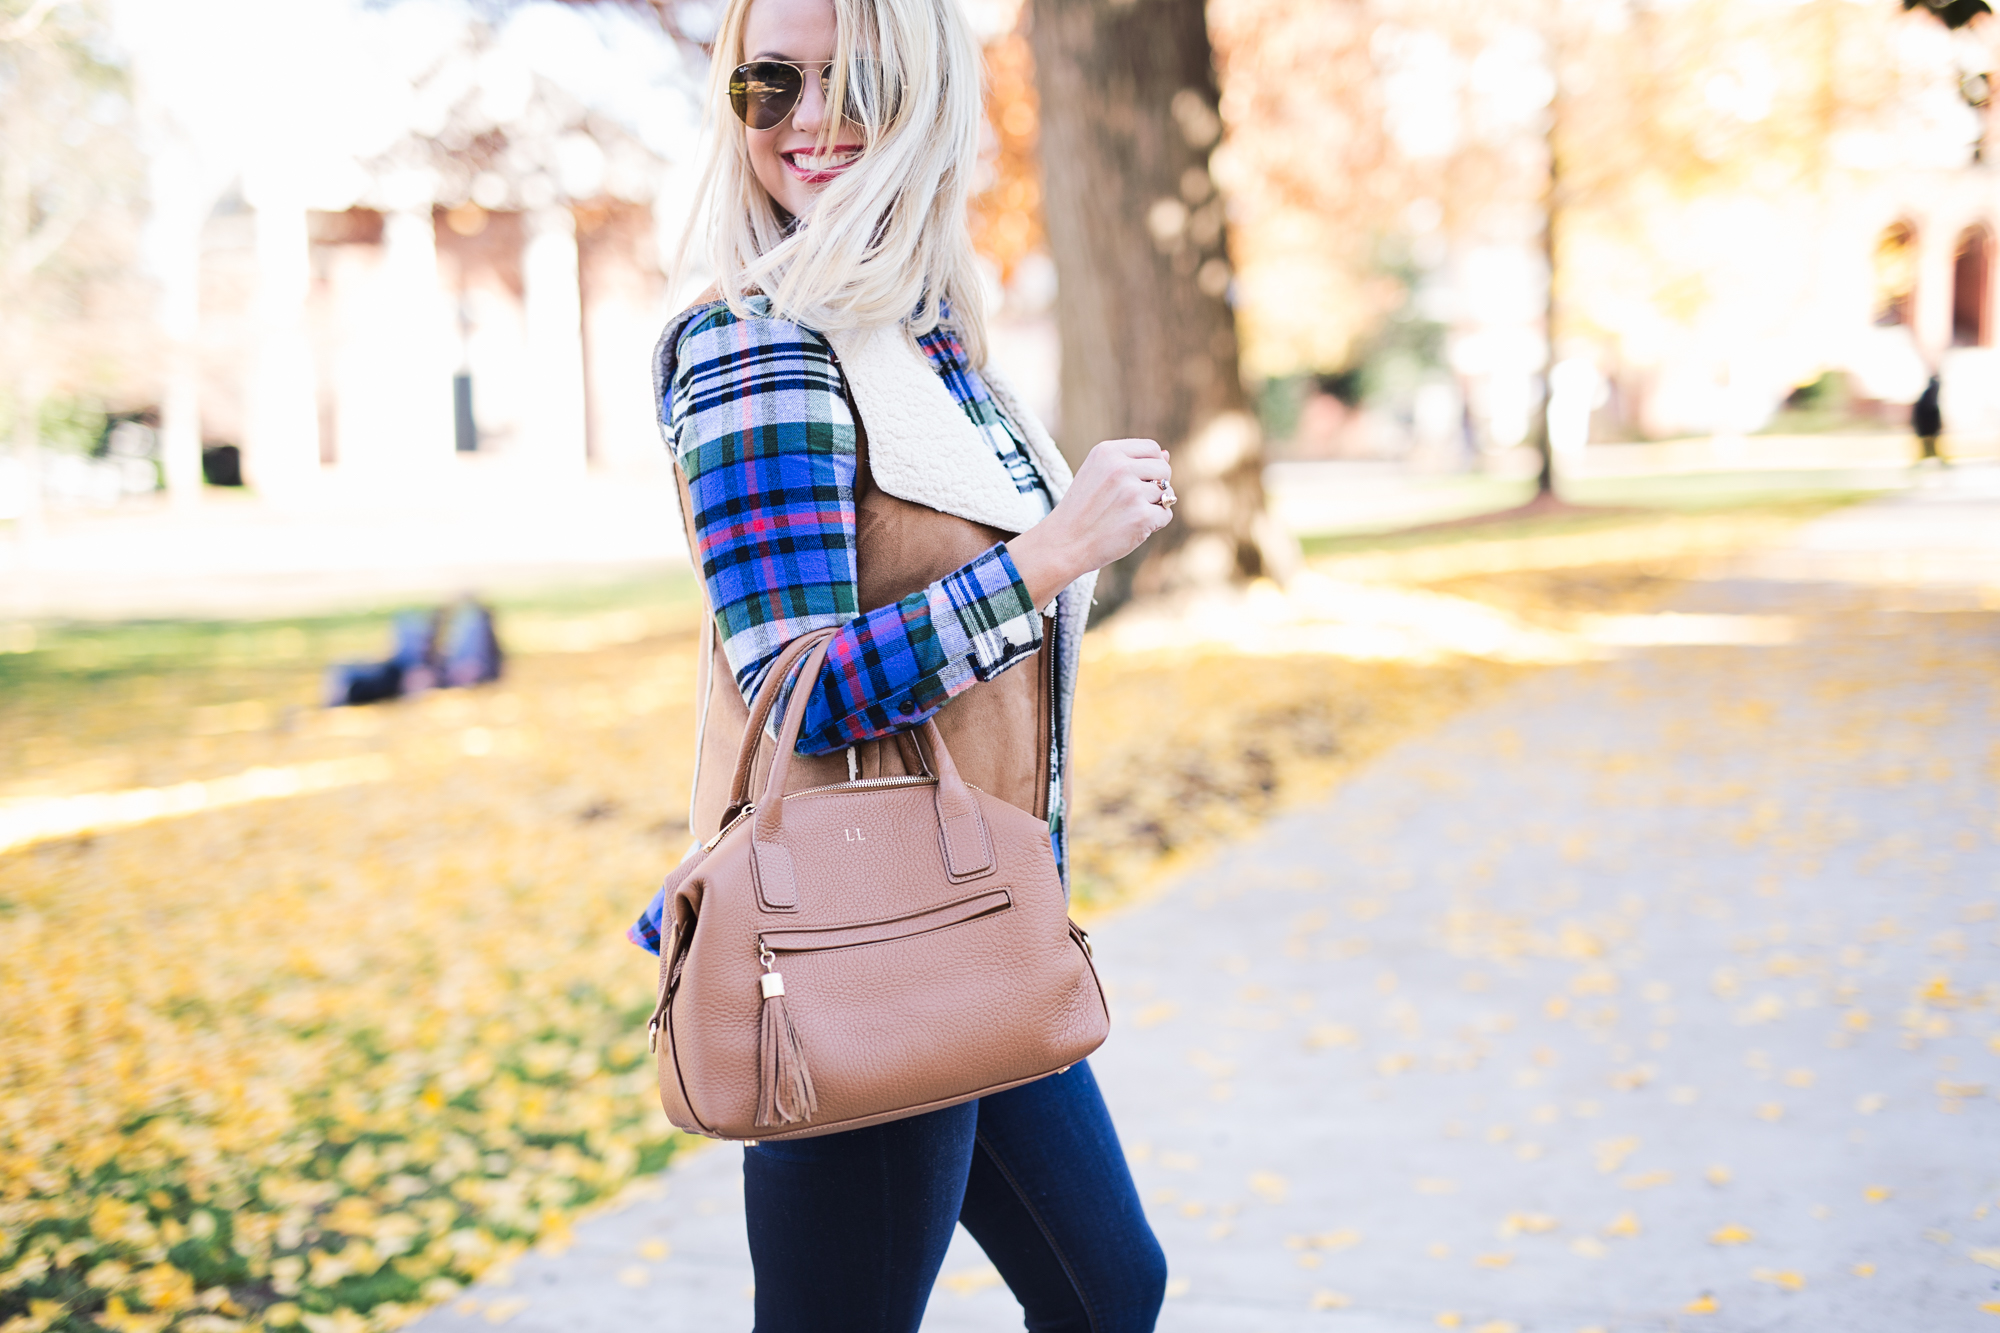 plaidshirt_bag-1.jpg